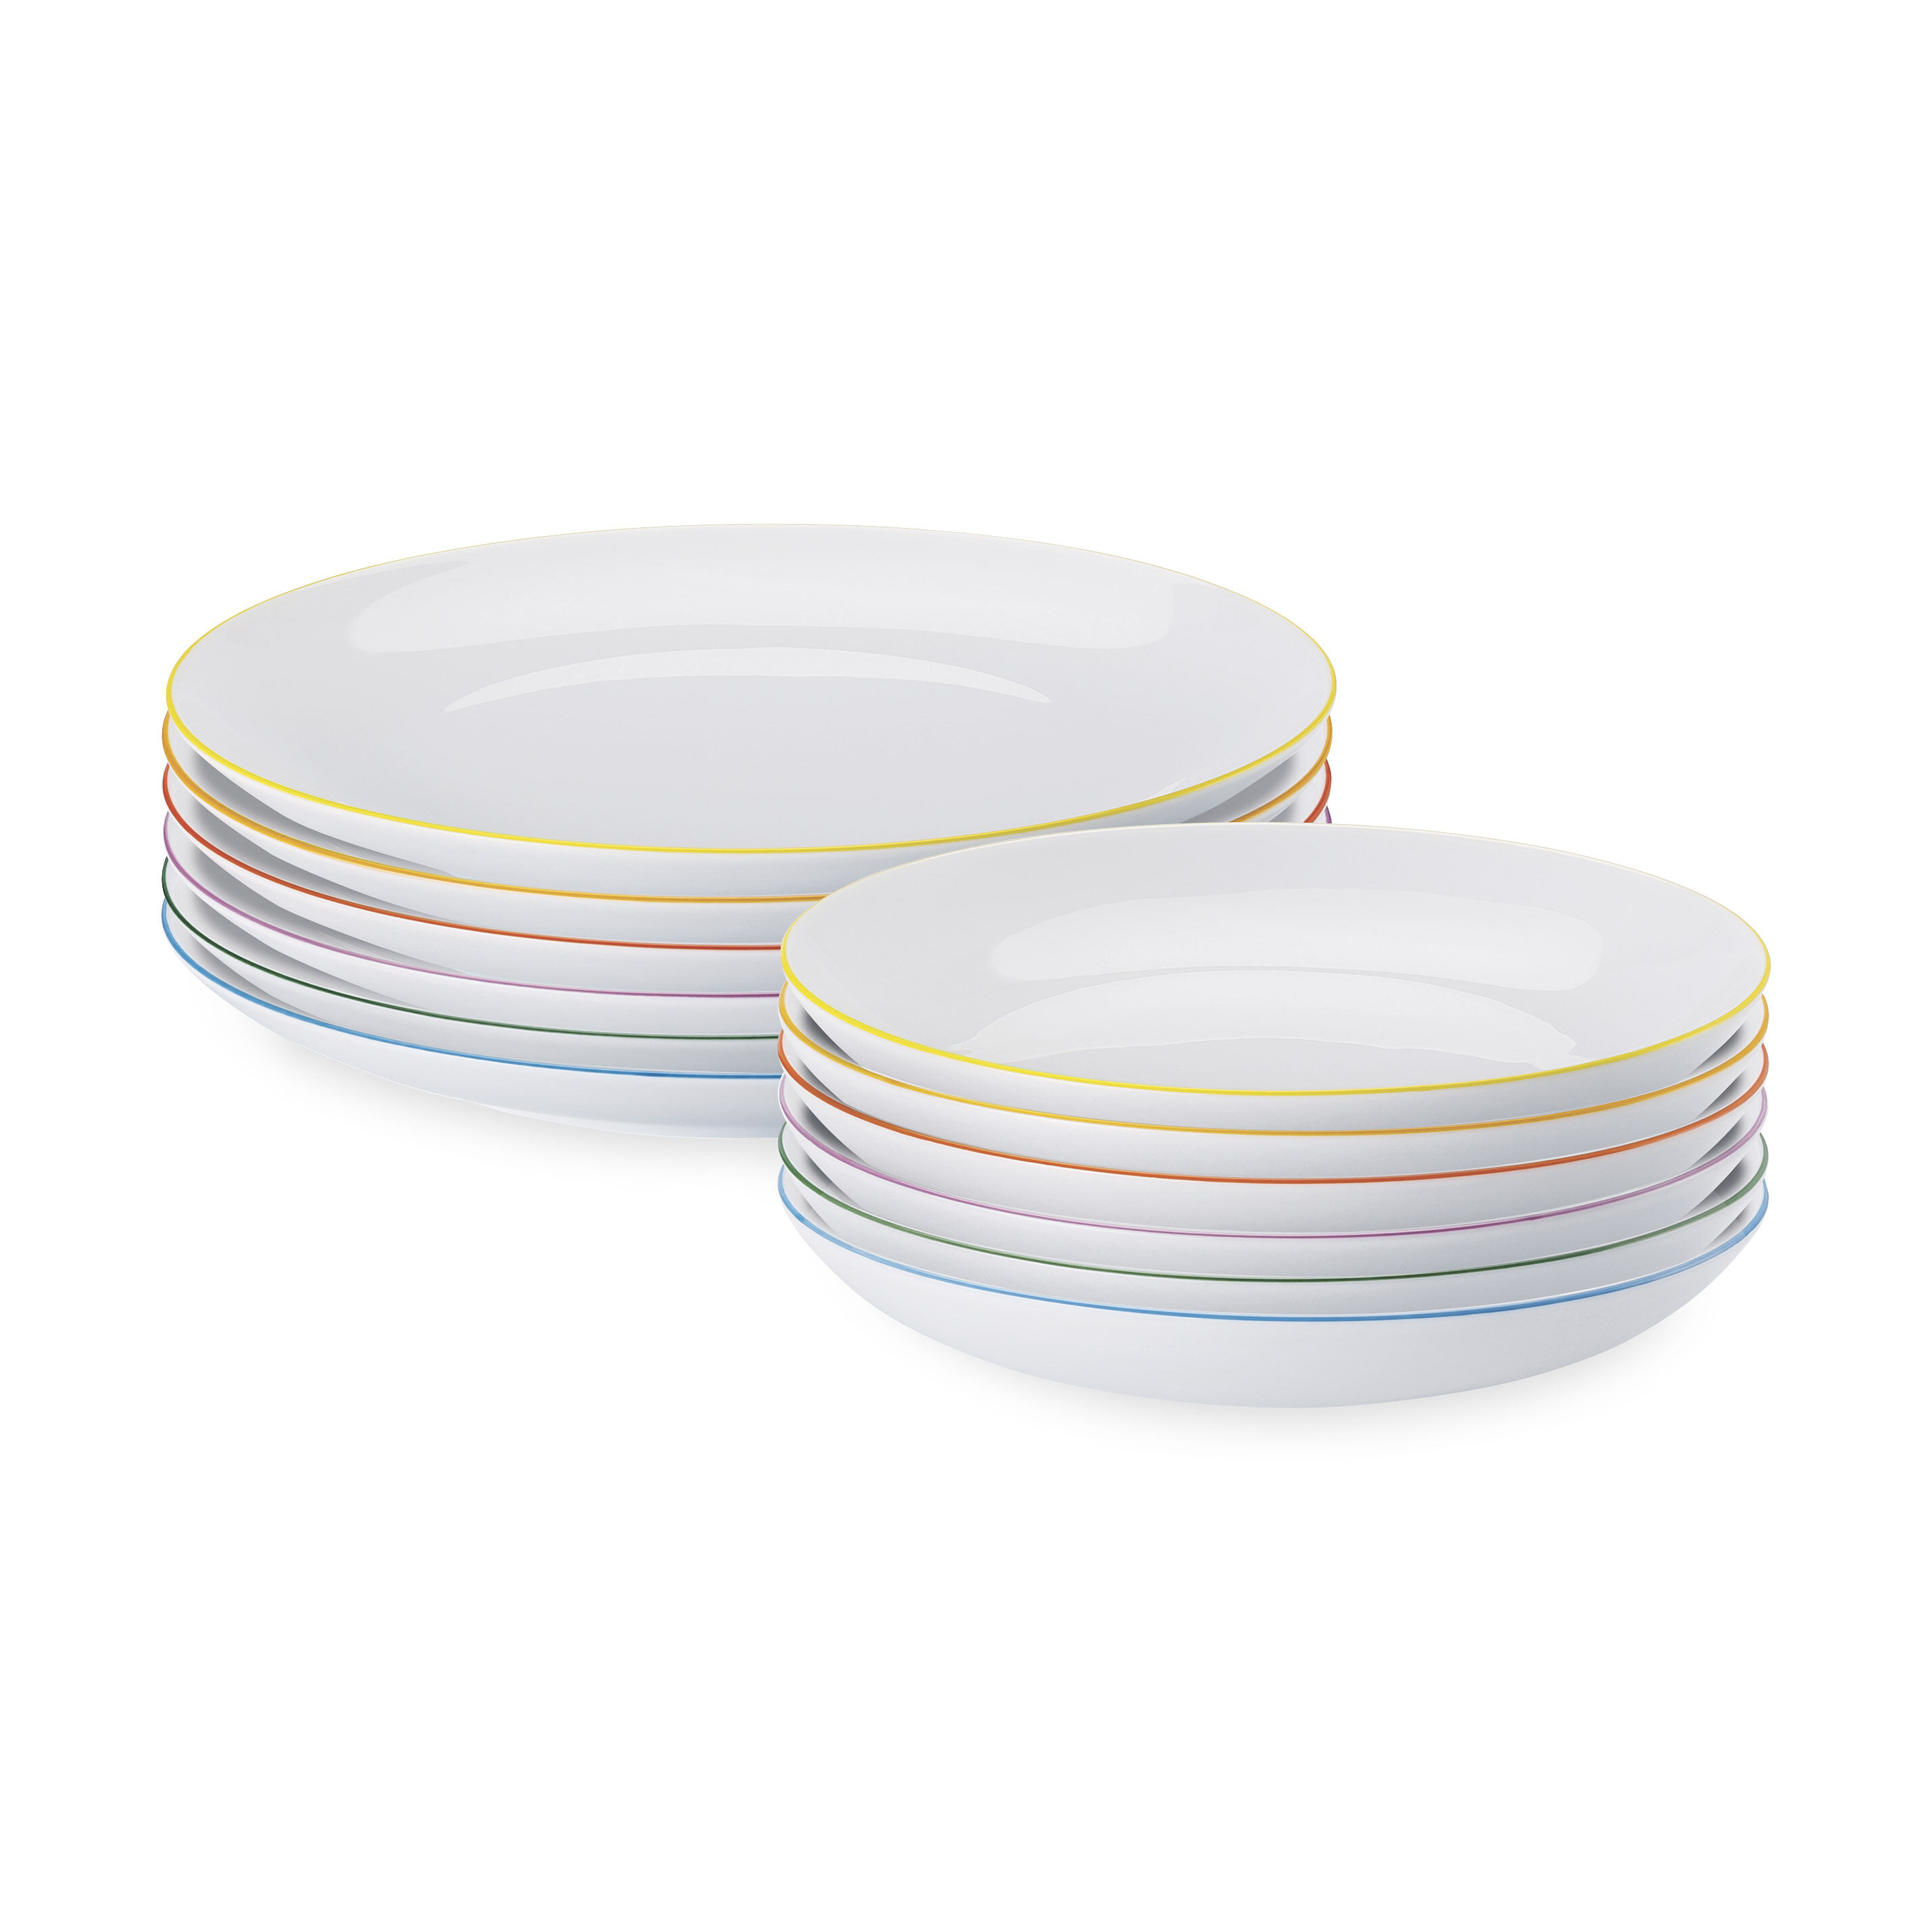 Cucina Colori Dinnerware Plate Set in color  sc 1 st  MoMA Design Store : bowl and plate set - pezcame.com